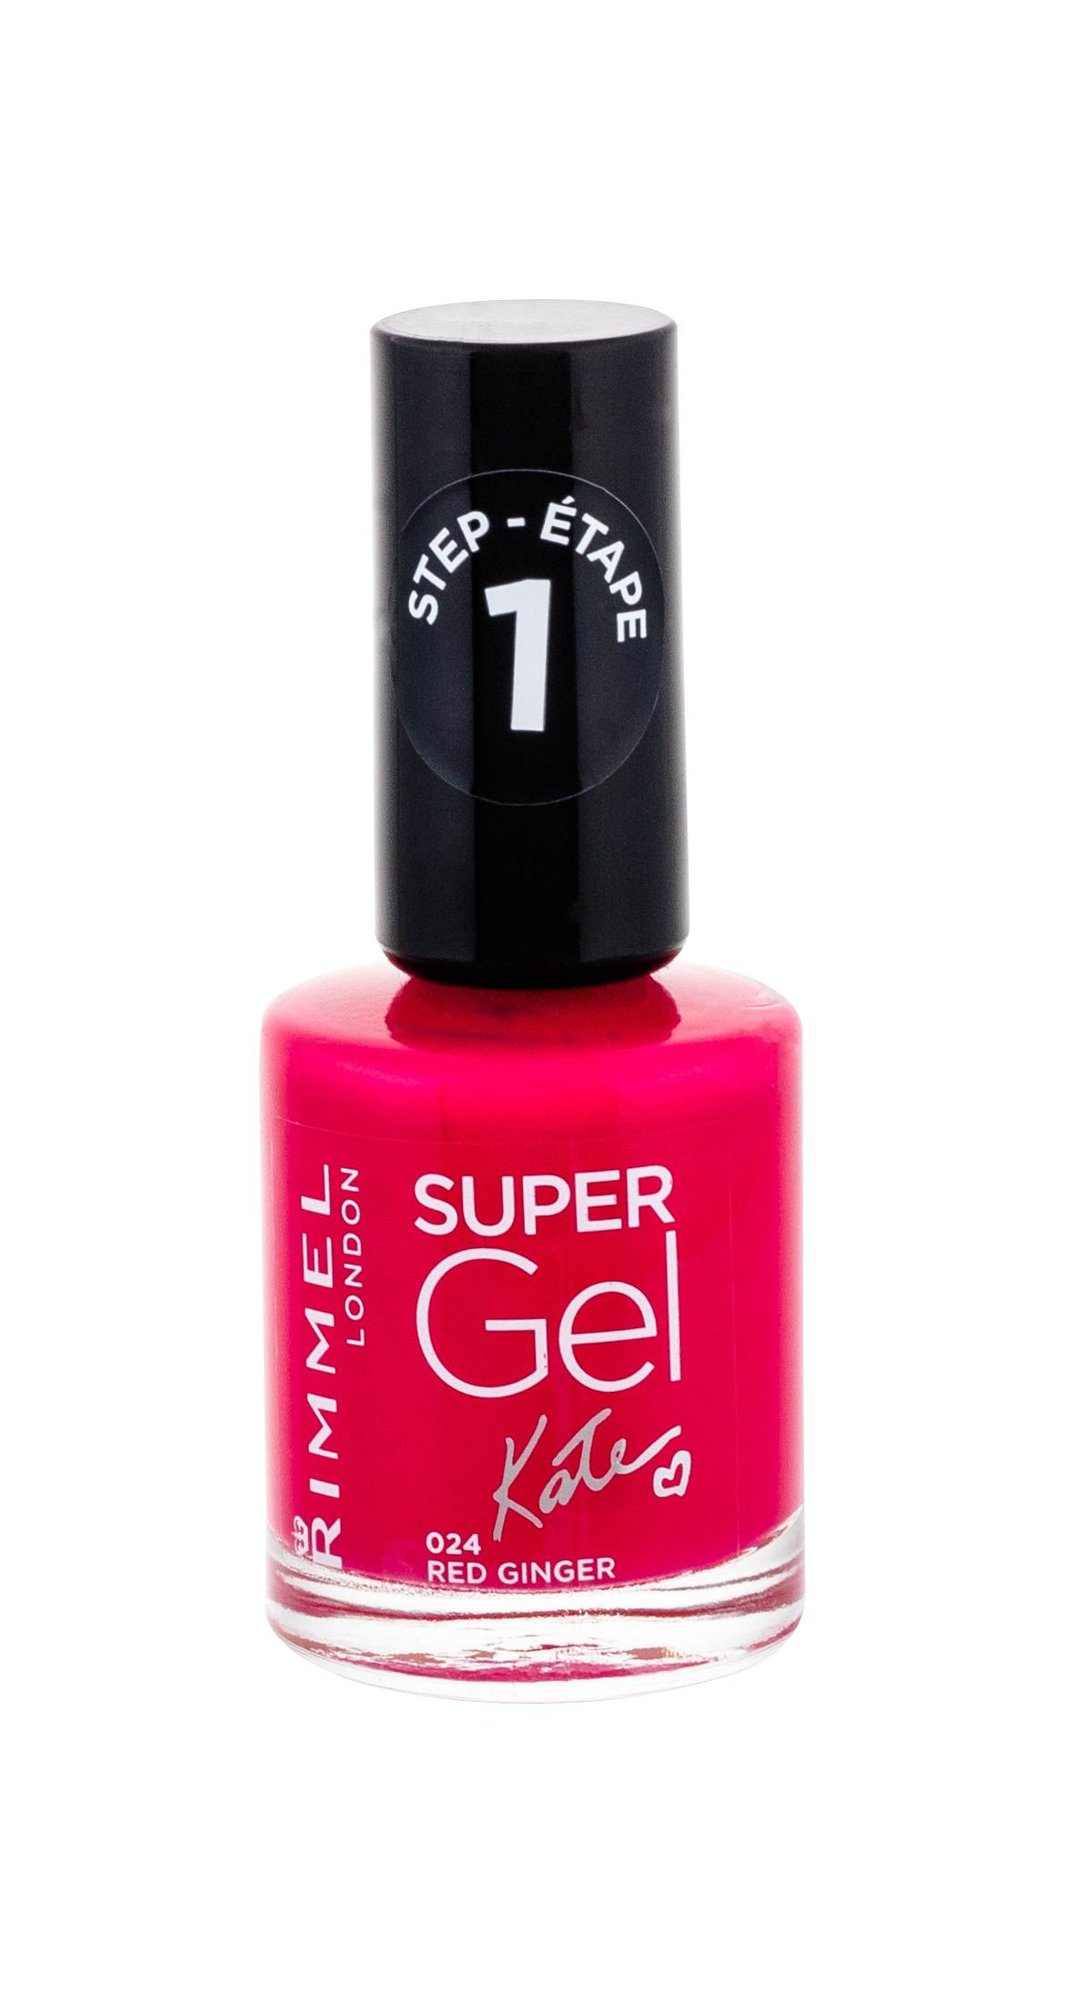 Rimmel London Super Gel By Kate Cosmetic 12ml 024 Red Ginger